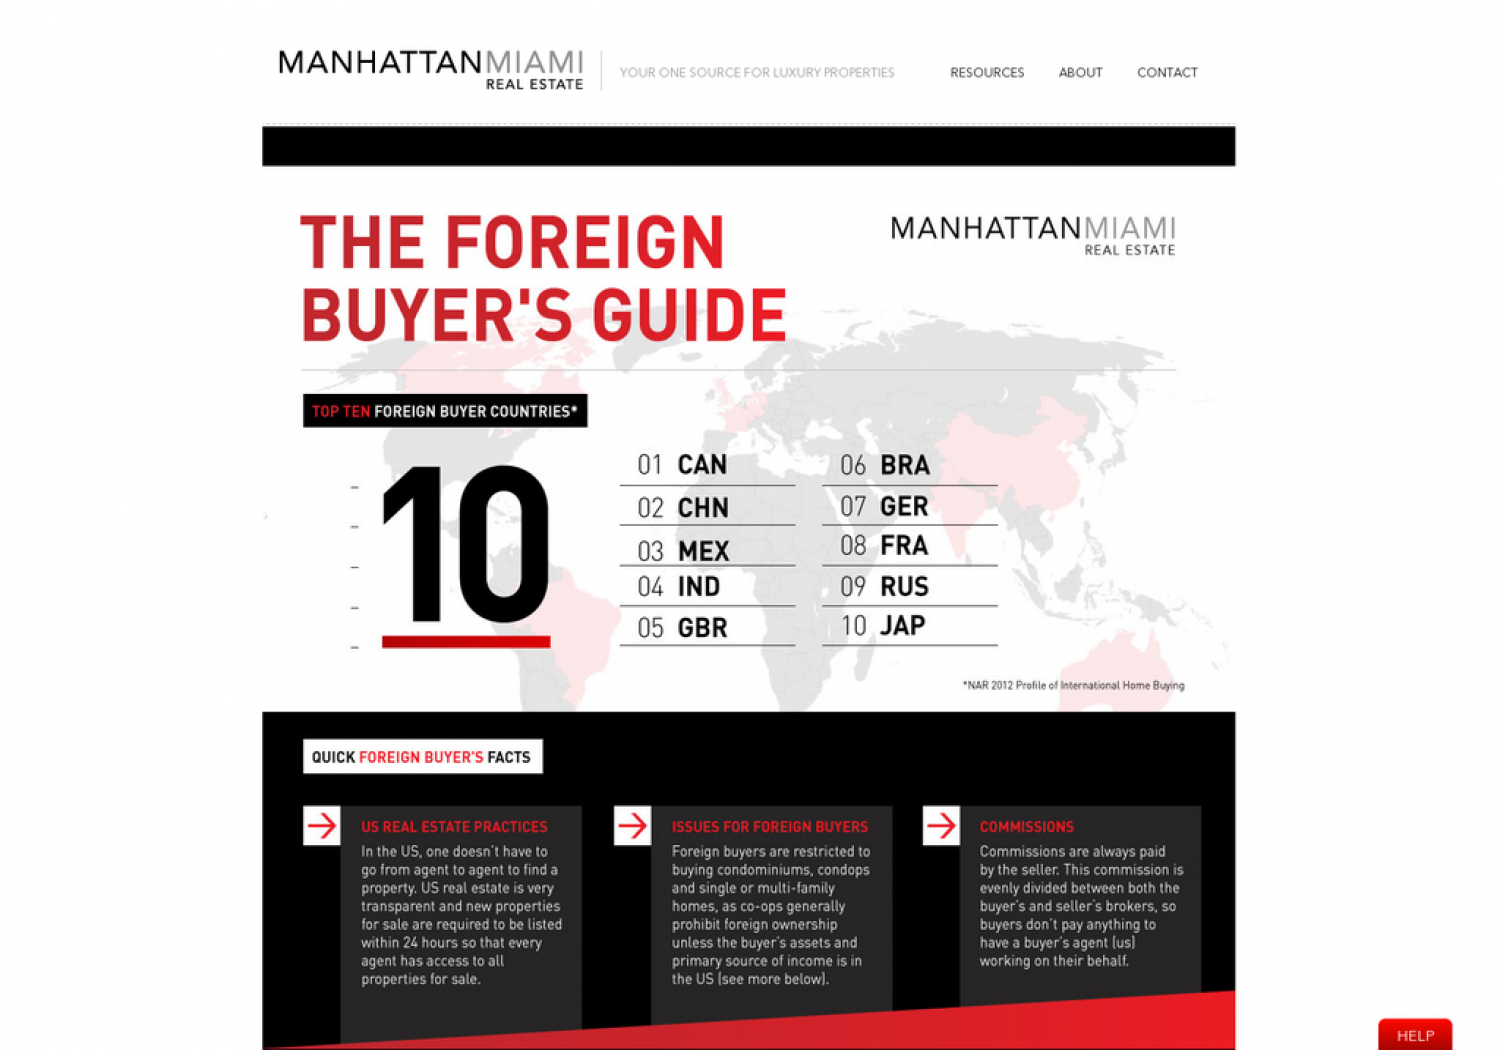 Manhattan Miami Real Estate Foreign Buyers Guide  Infographic